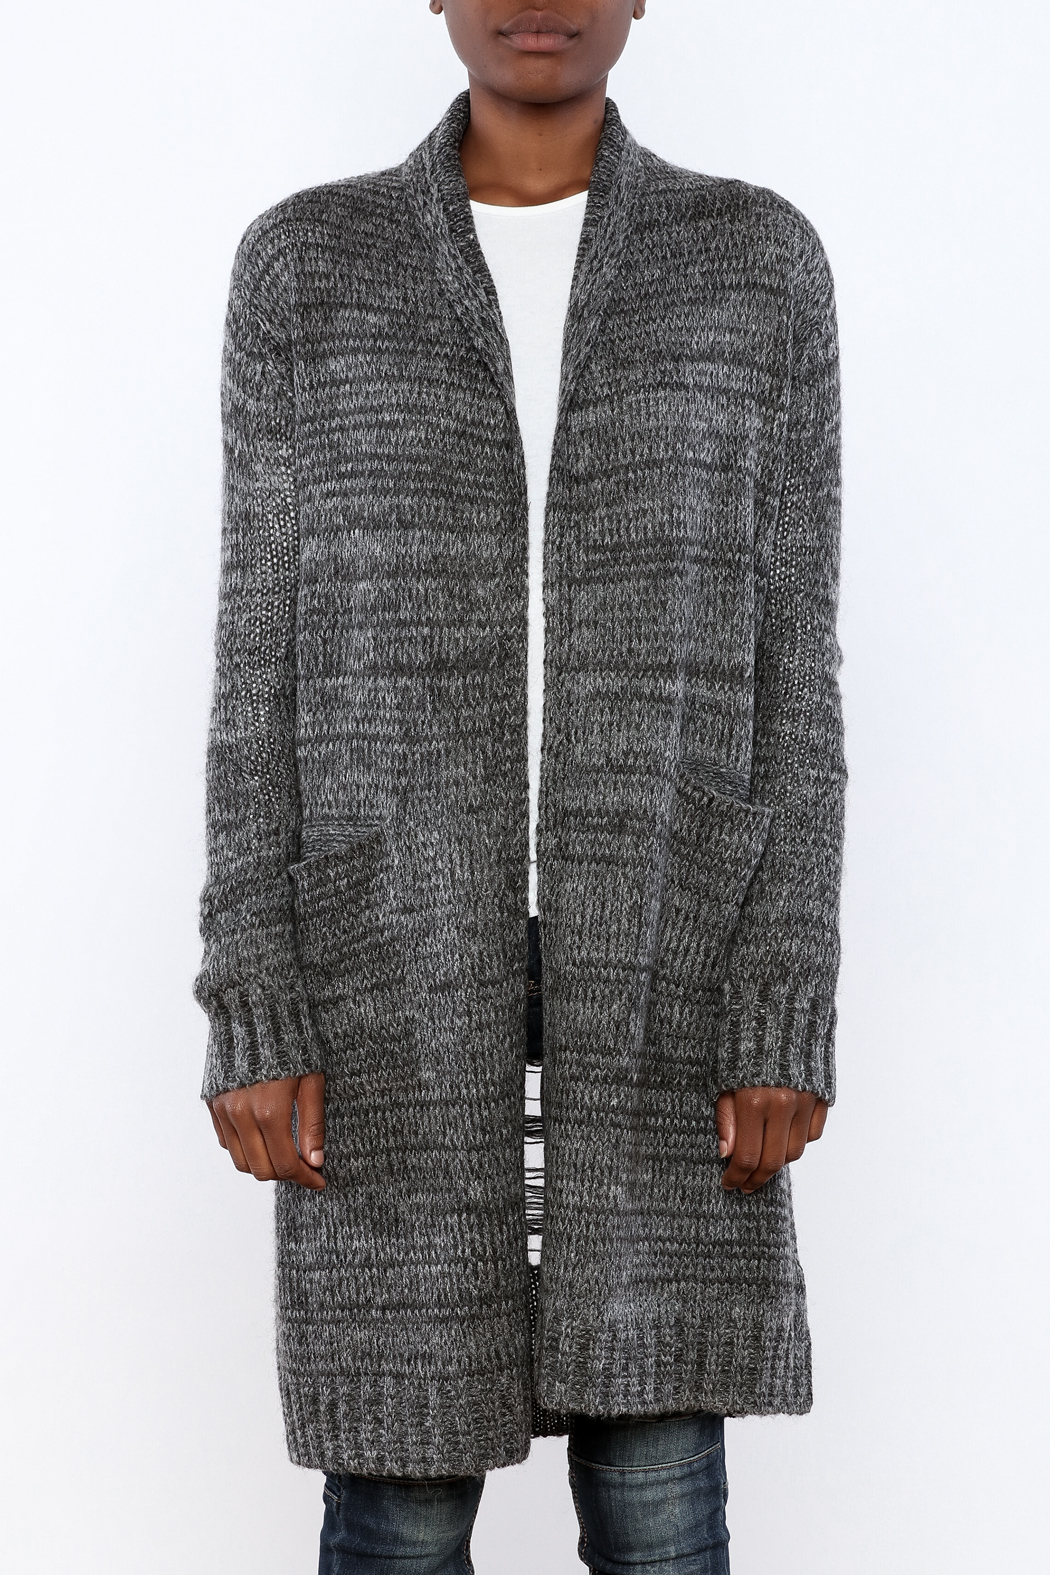 Mystree Deconstructed Knit Cardigan - Side Cropped Image